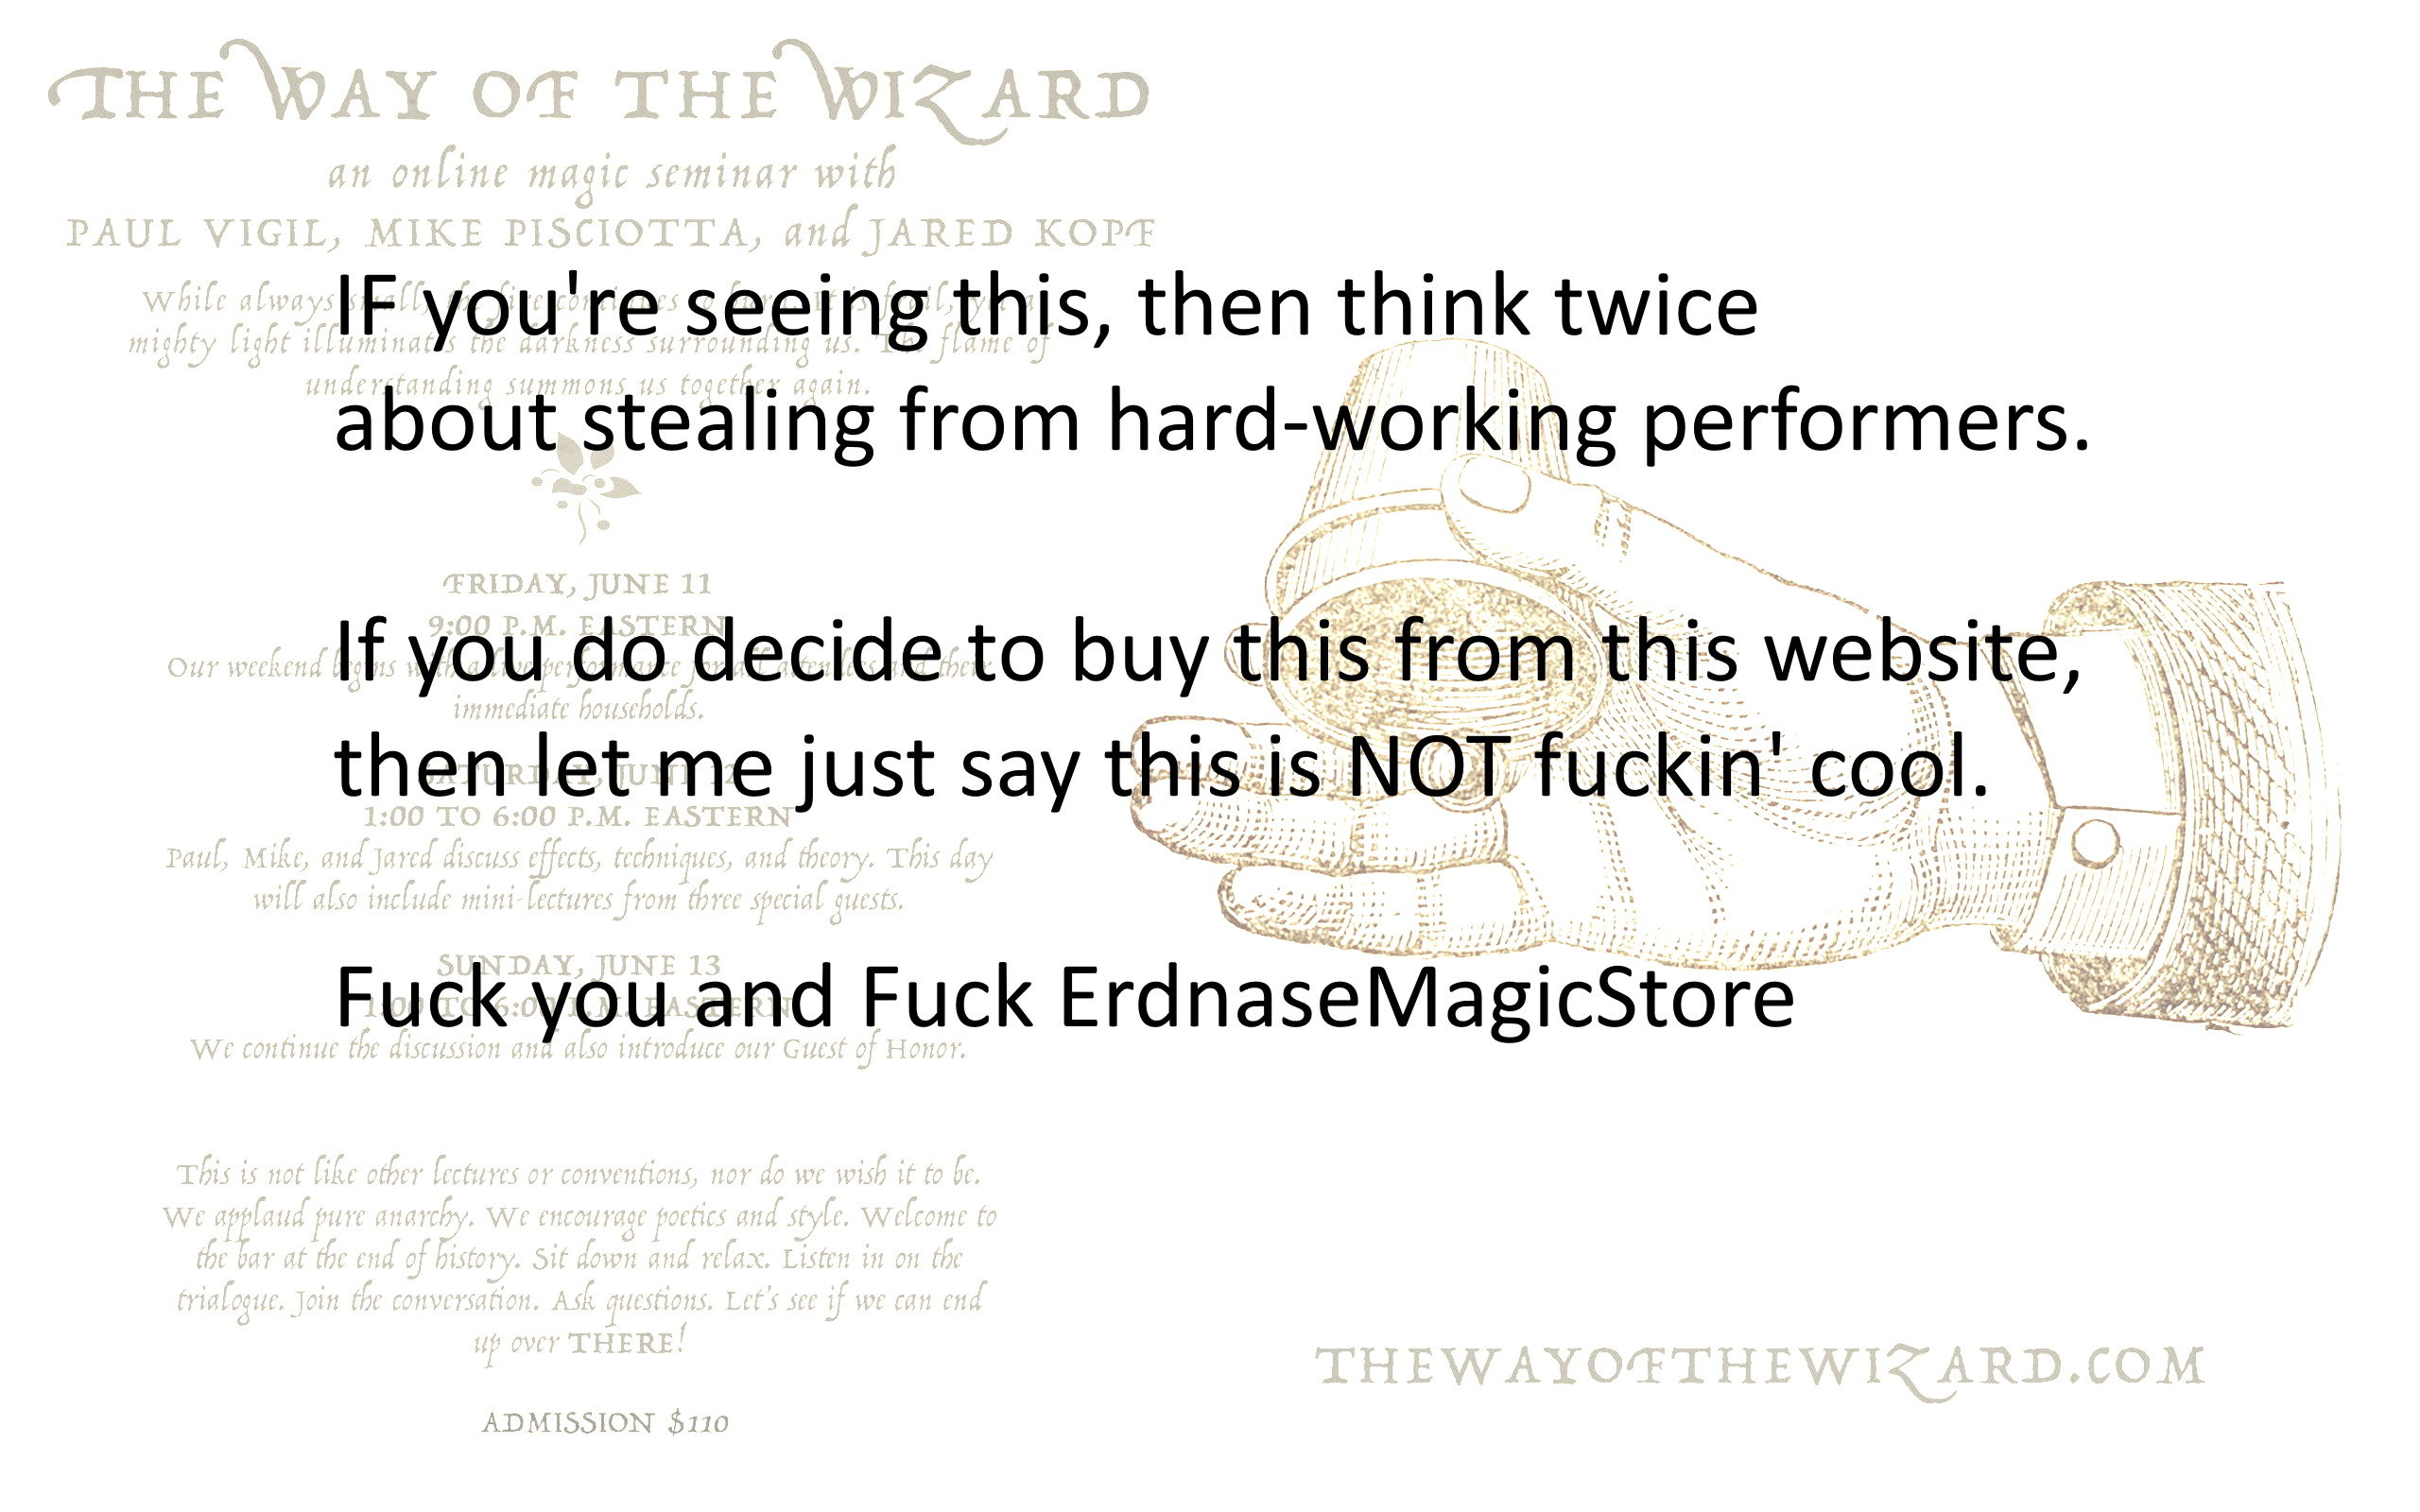 The Way of the Wizard 3